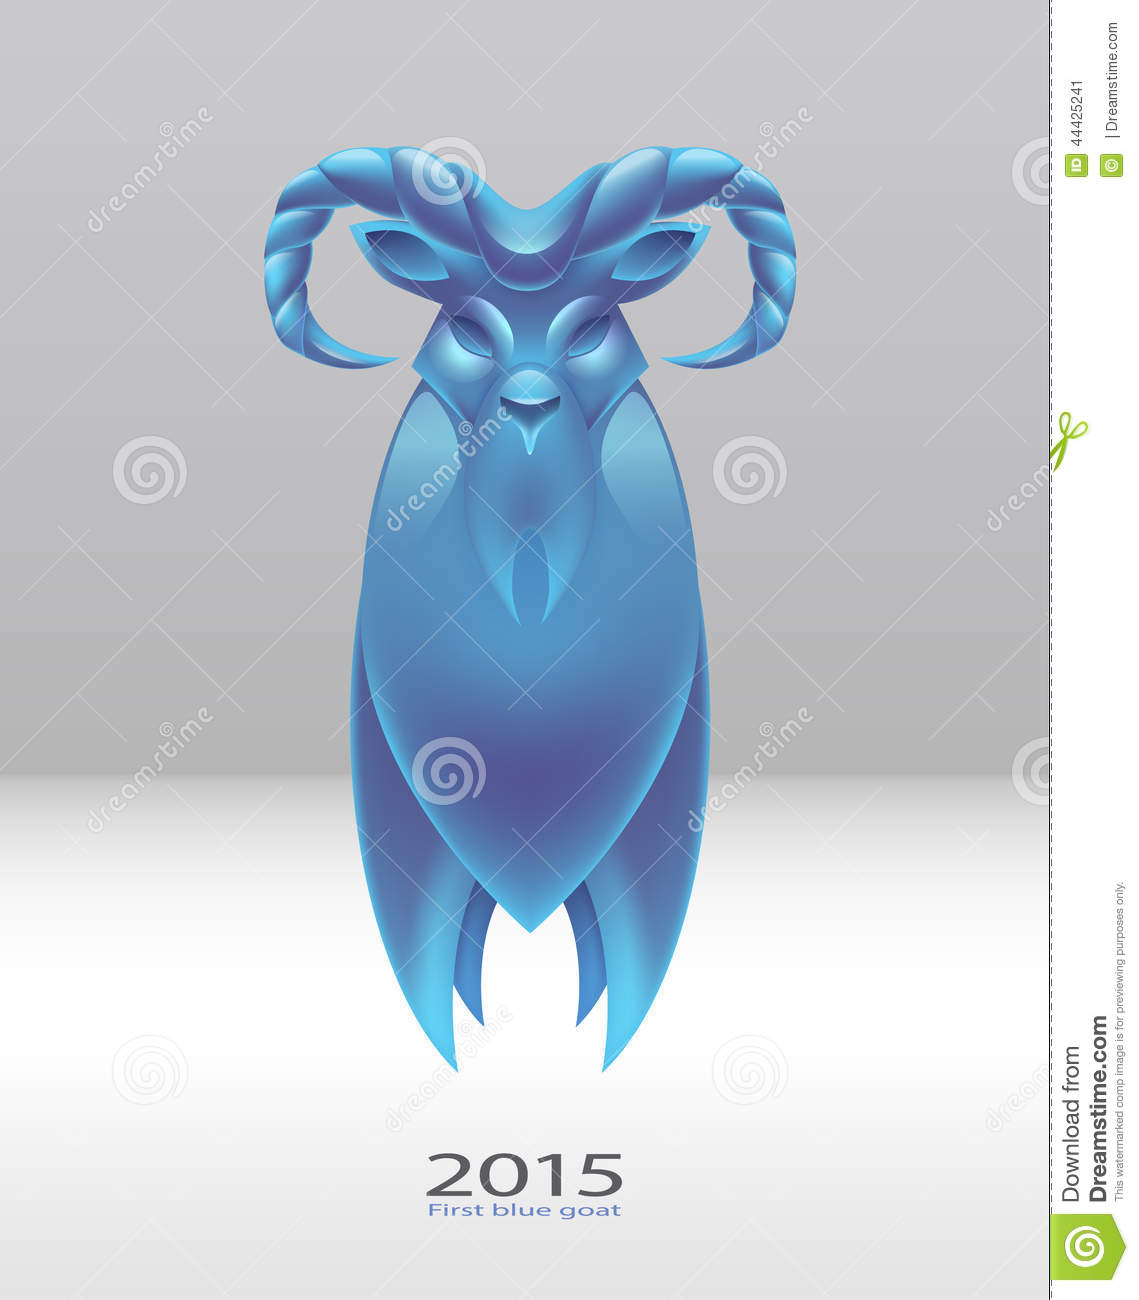 logo blue goat to a new 2015 stock vector